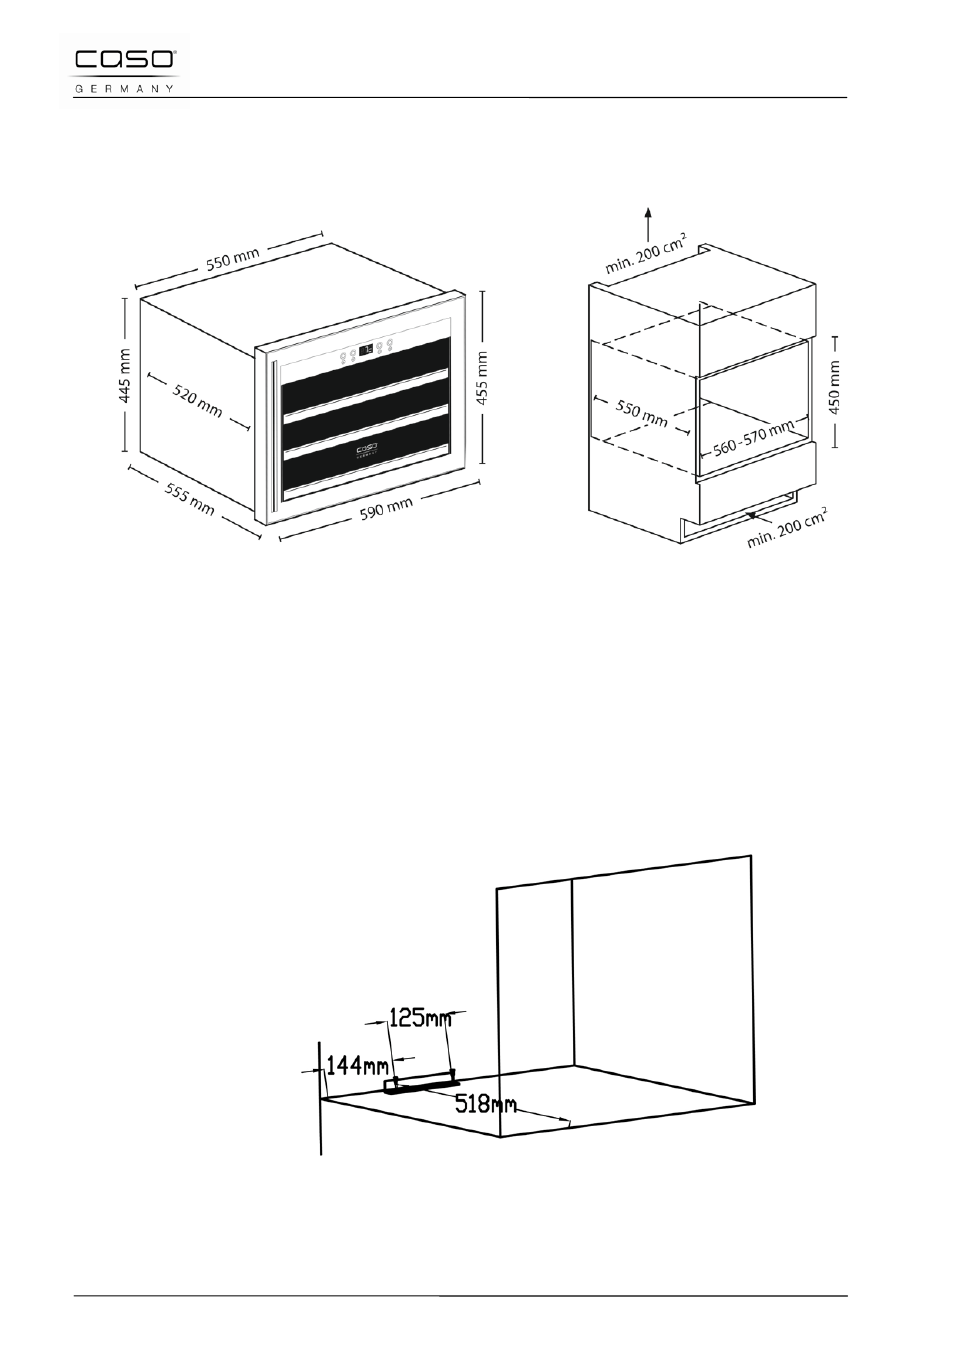 2 installation dimensions (mm), 3 installing in a kitchen